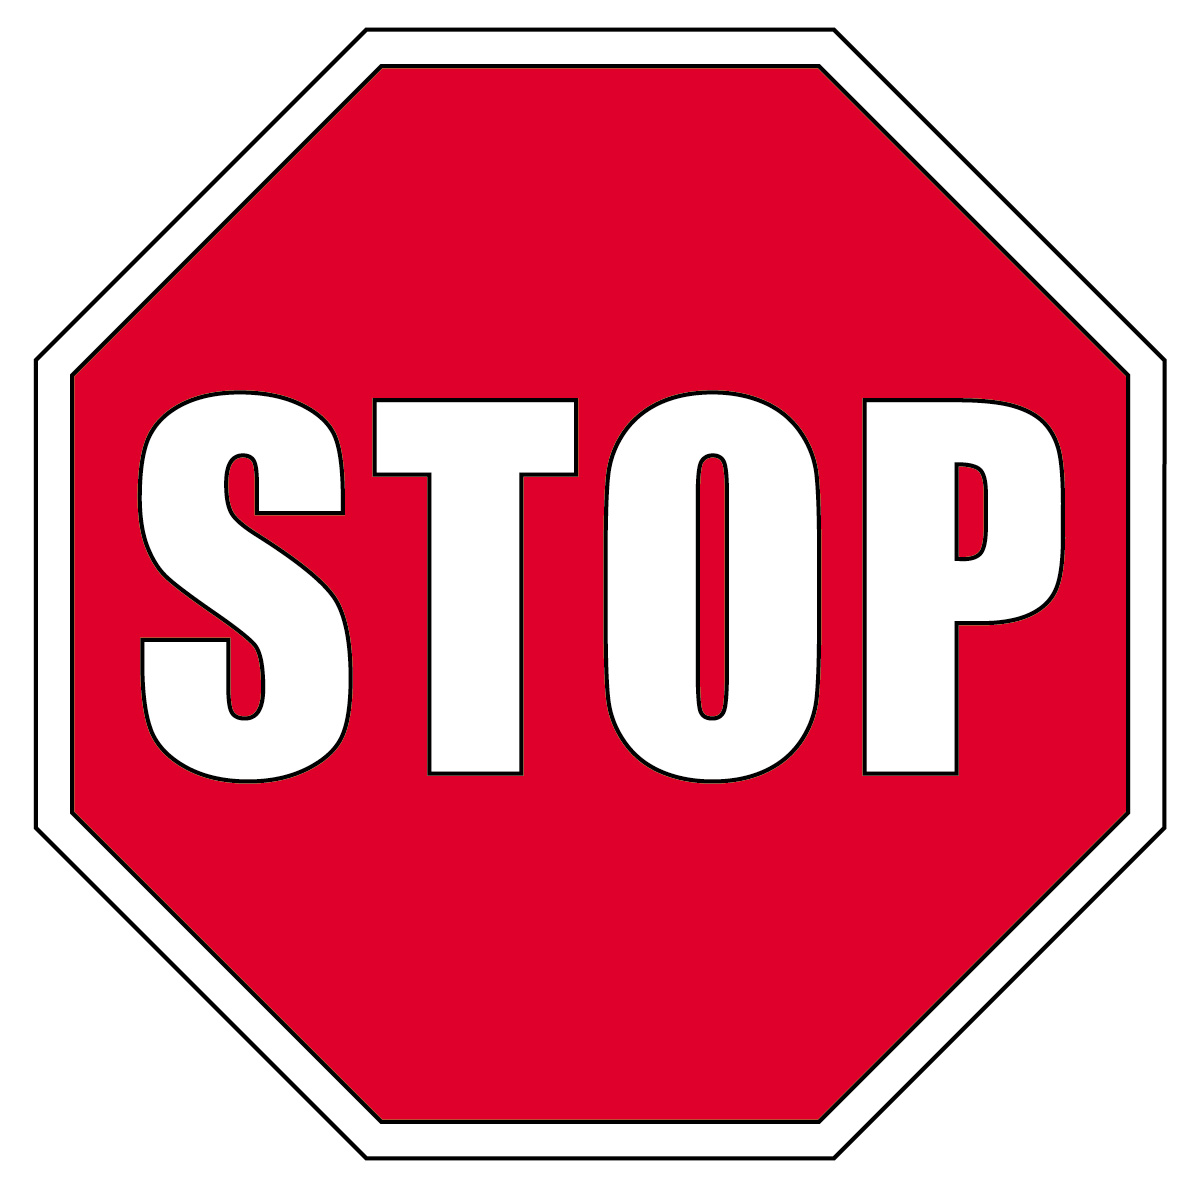 1200x1200 Stop Sign Clipart Black And White Clipart Panda